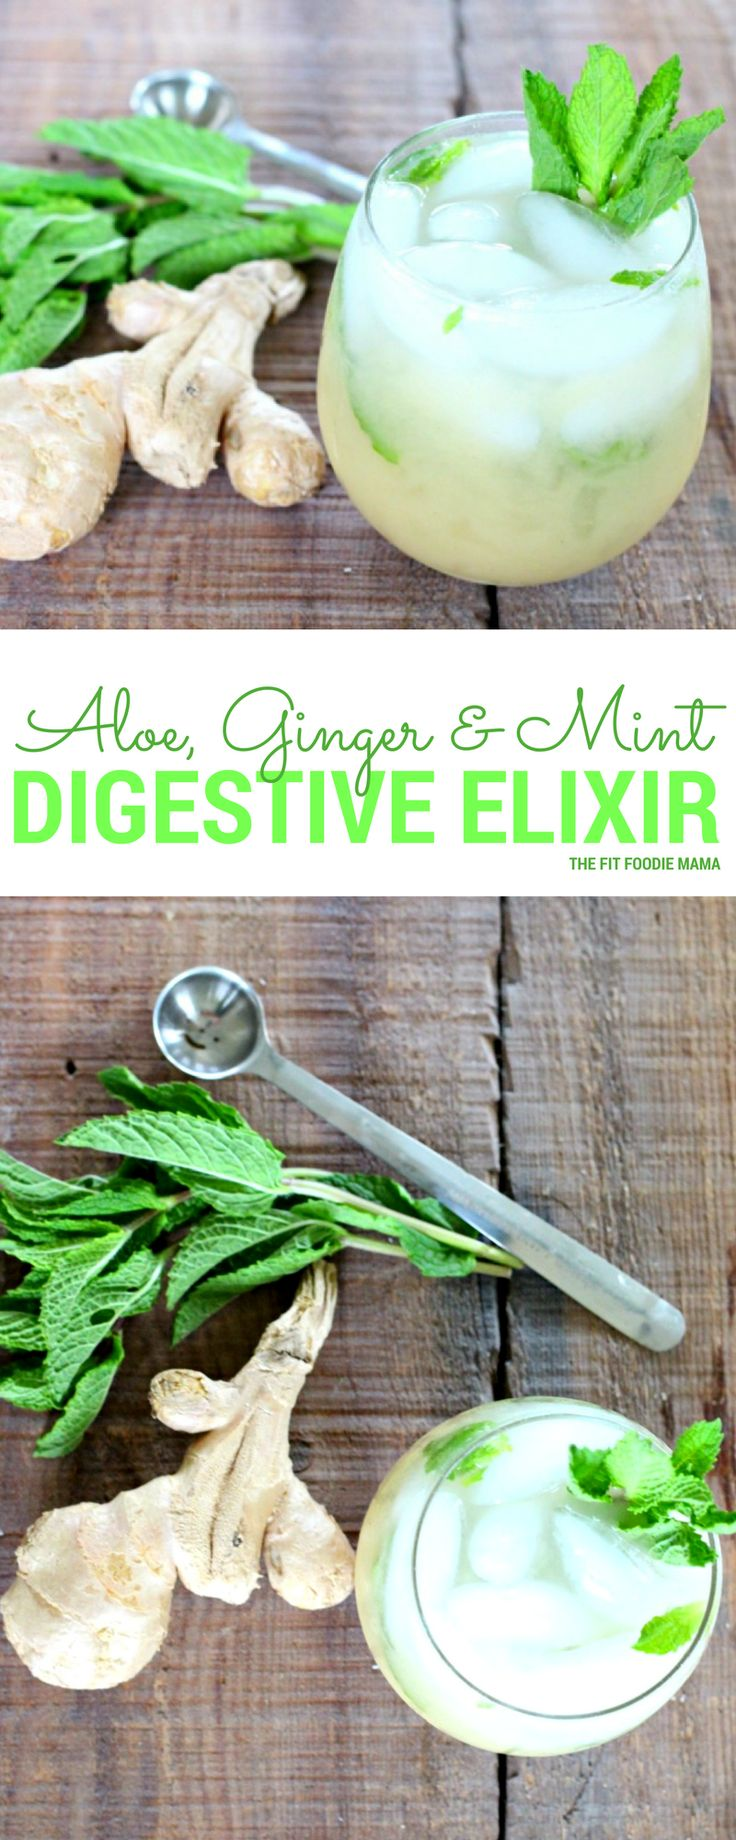 Easy belly bloat, pain and indigestion with this Aloe, Ginger & Mint Digestive Elixir {gluten free, dairy free, allergy friendly} - The Fit Foodie Mama